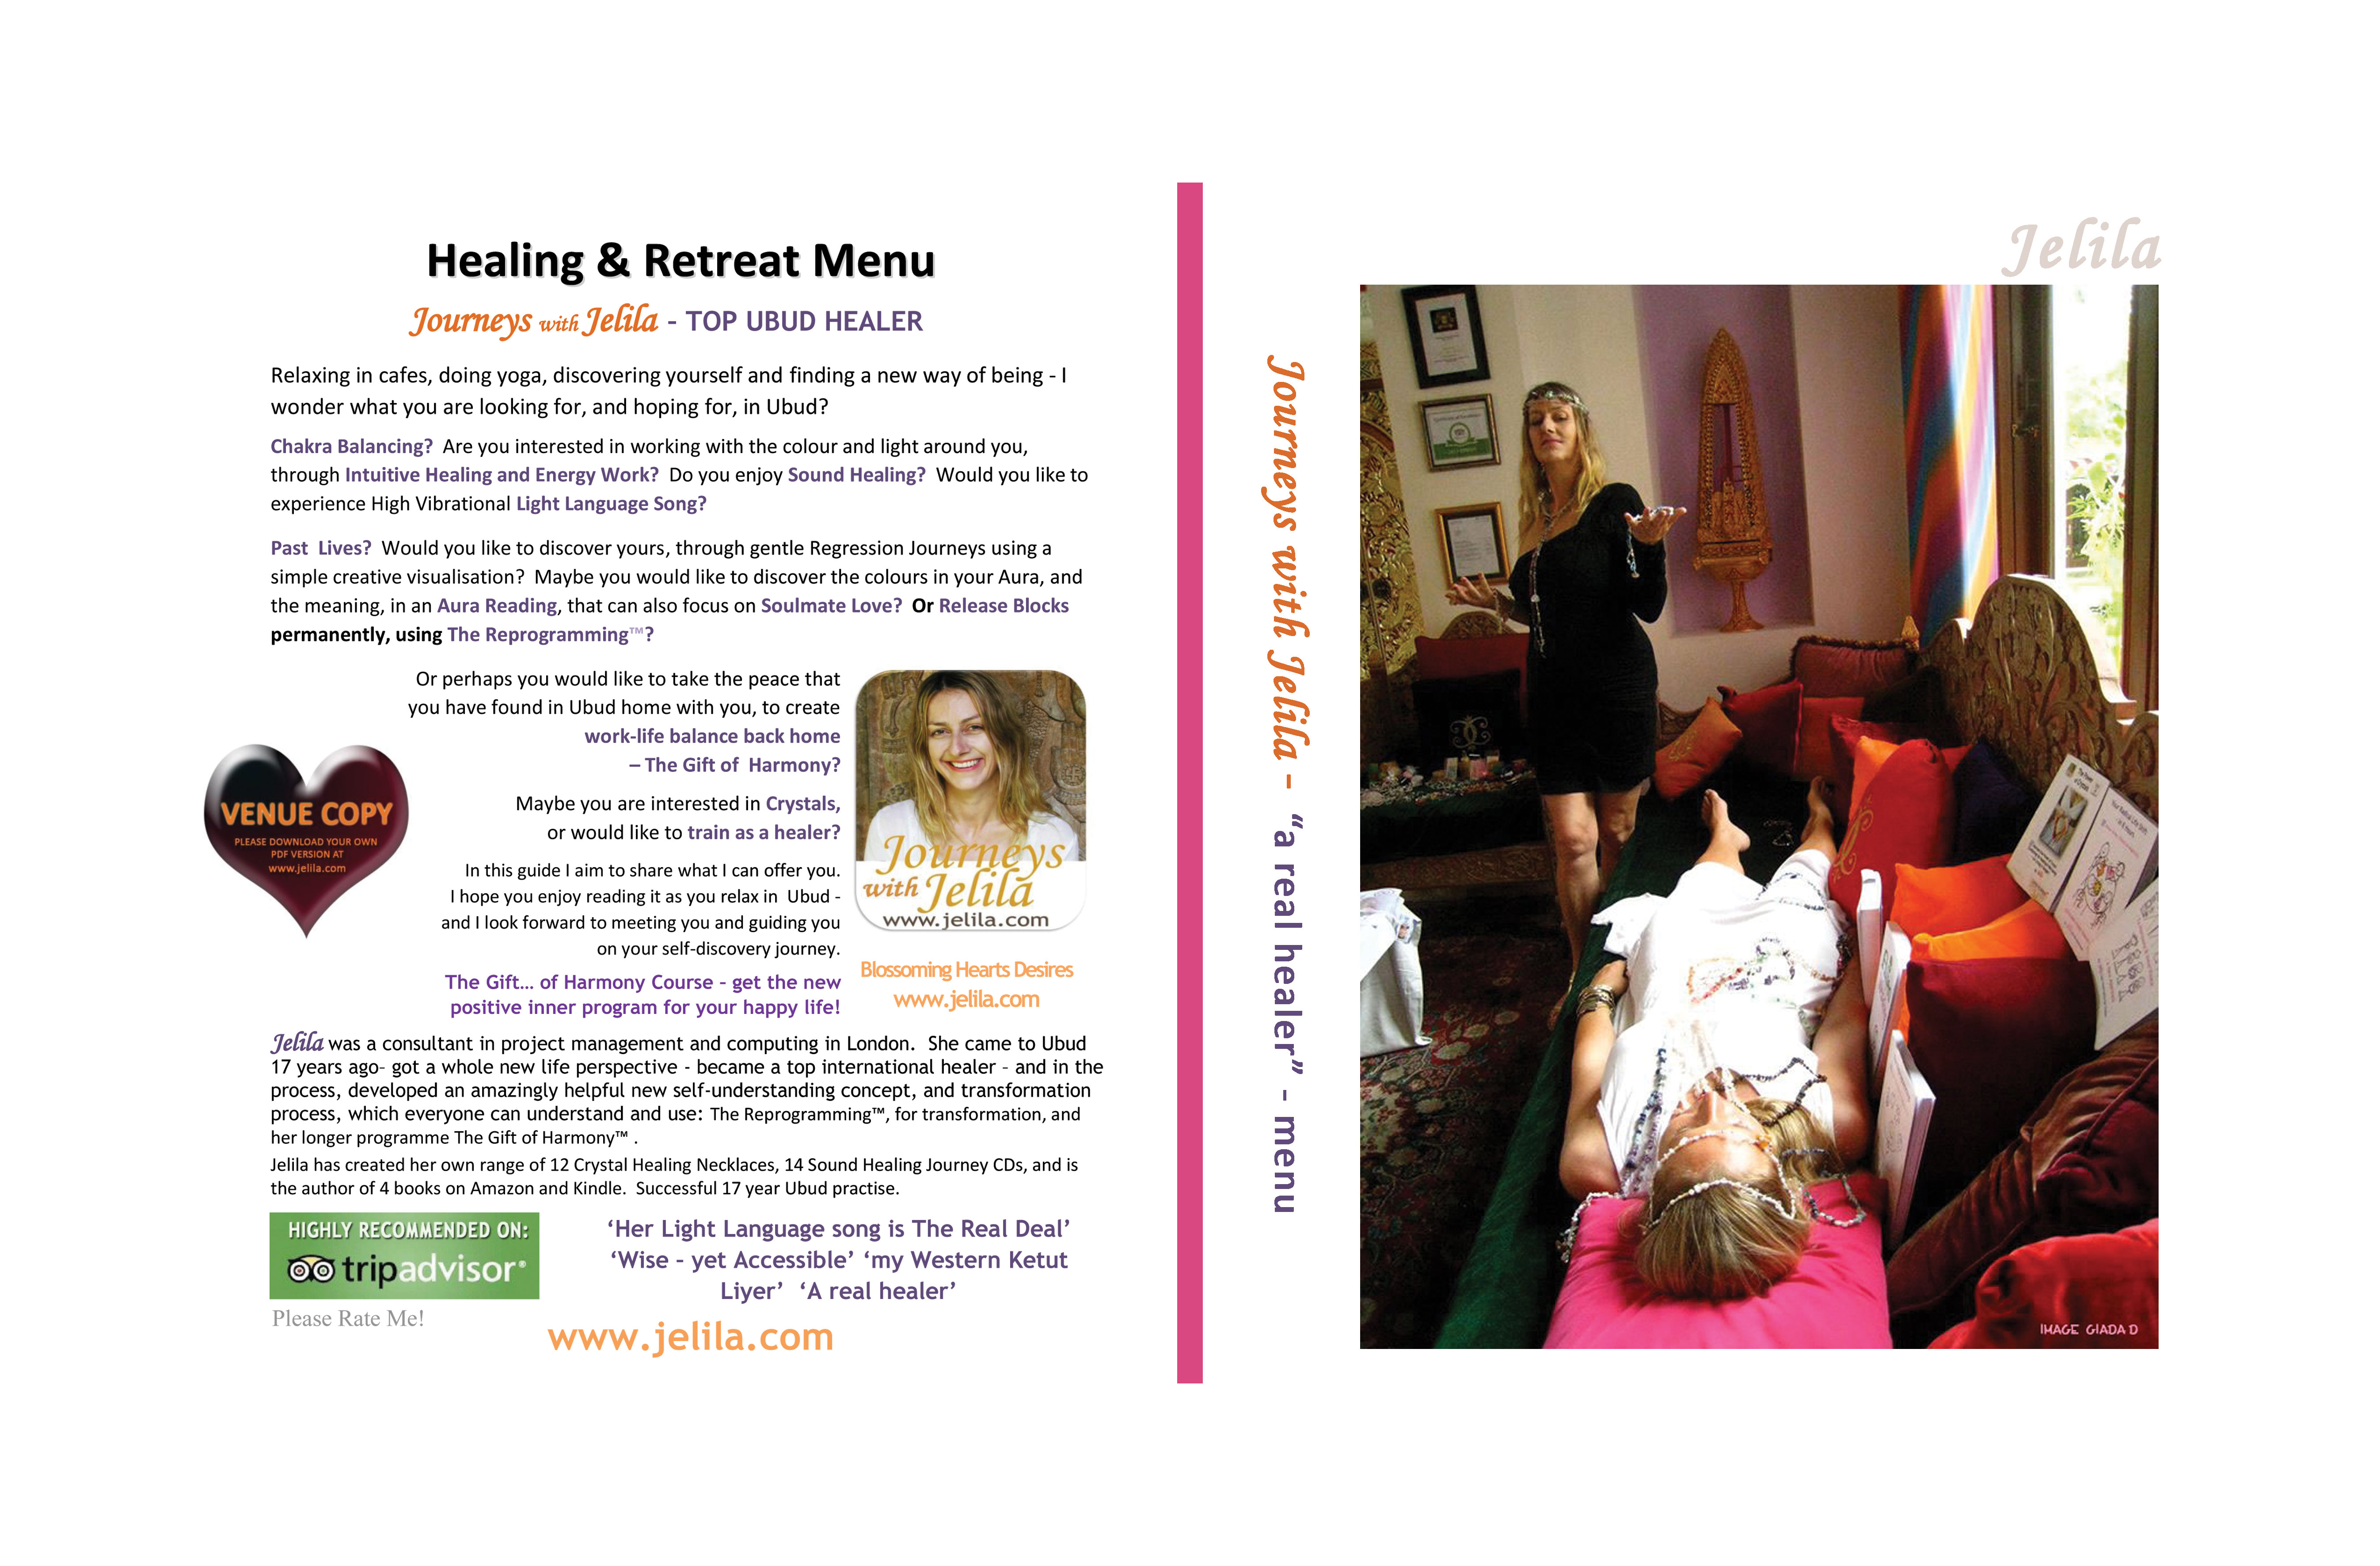 Free Download (6mb) 55 Page Full Colour PDF for a good browse about healing.